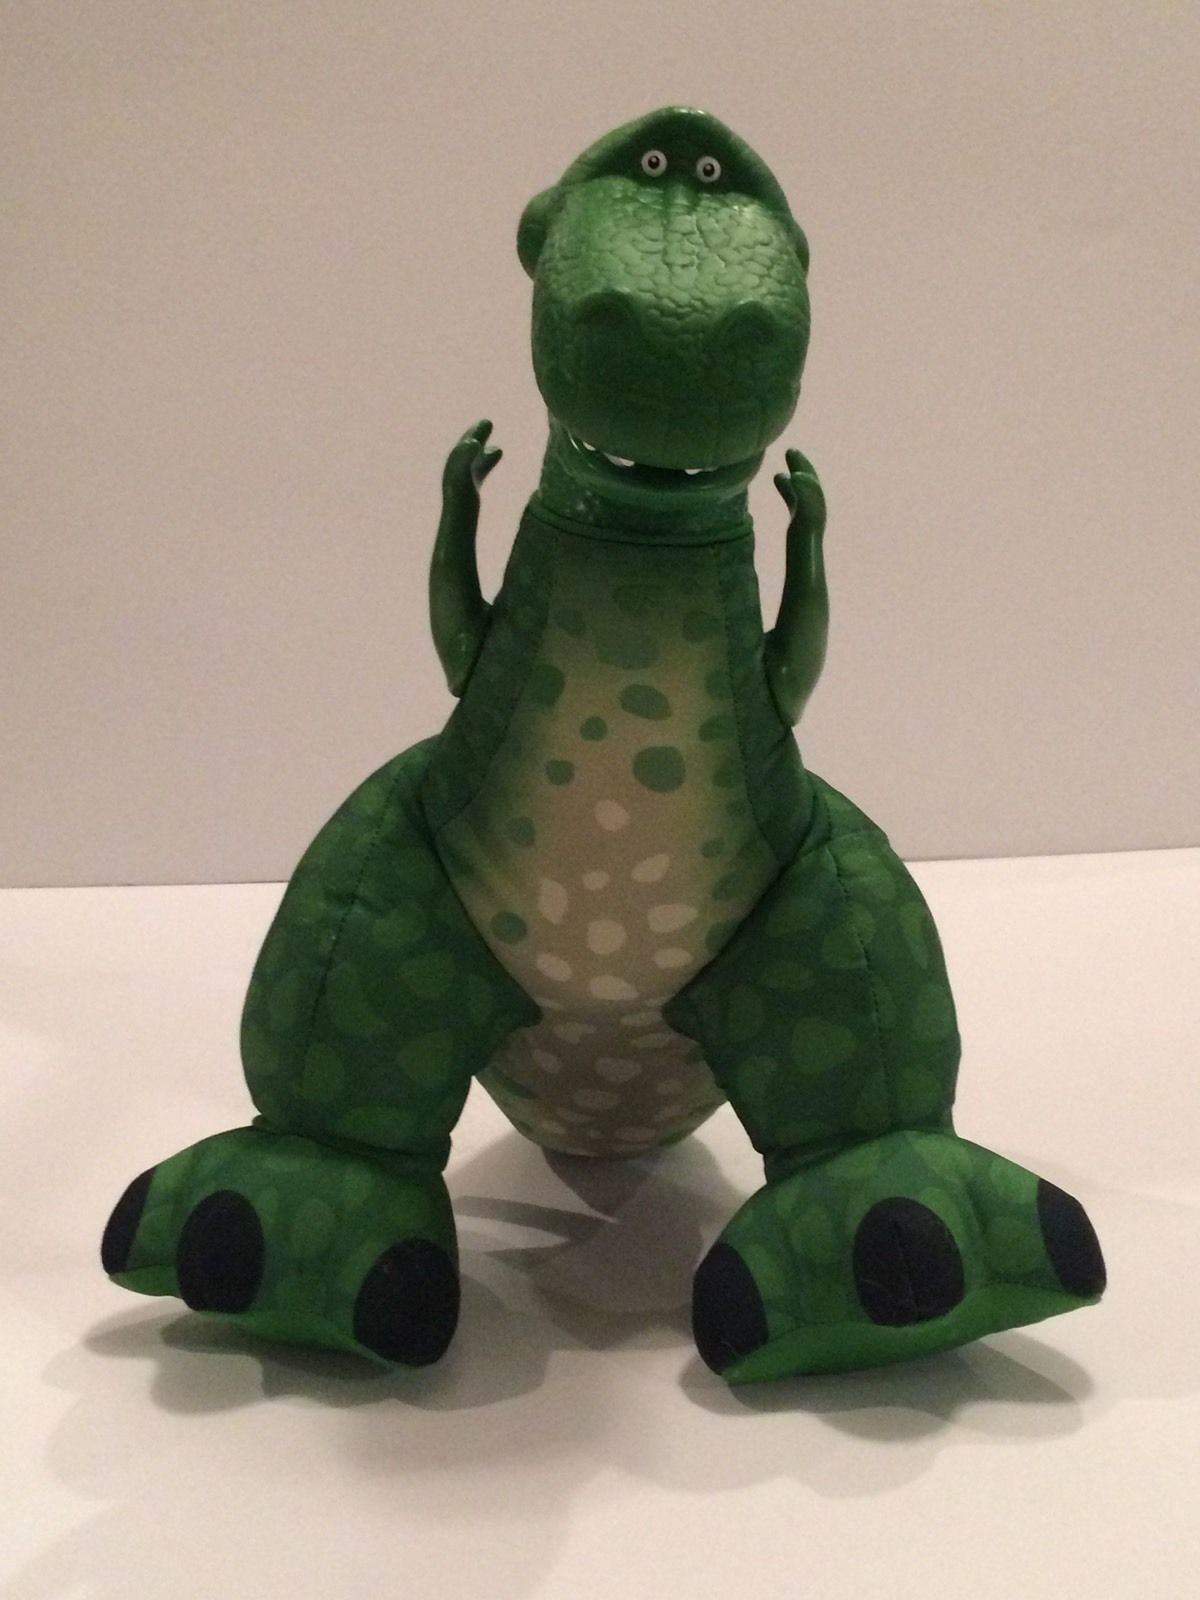 Fisher Price Green Dinosaur Plush Toy Story Plastic Head Arms Squeeze Make Roar image 3